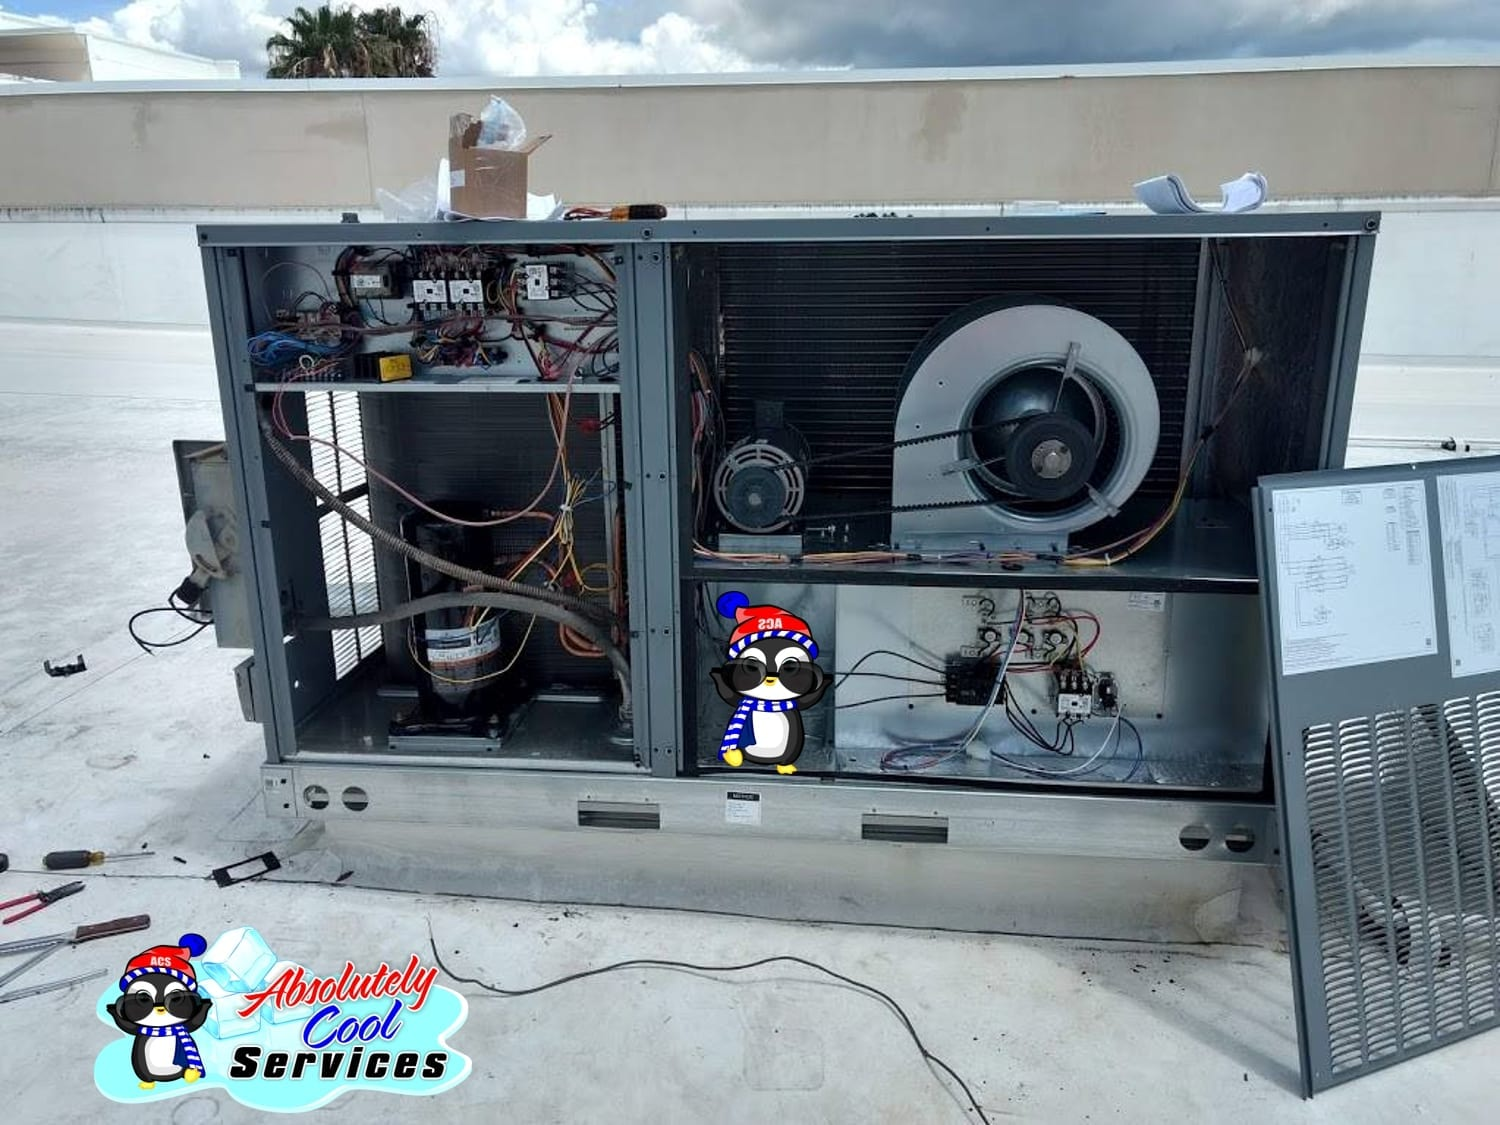 Roof Air Conditioning | Emergency Air Conditioning Diagnosis Company near Delray Beach